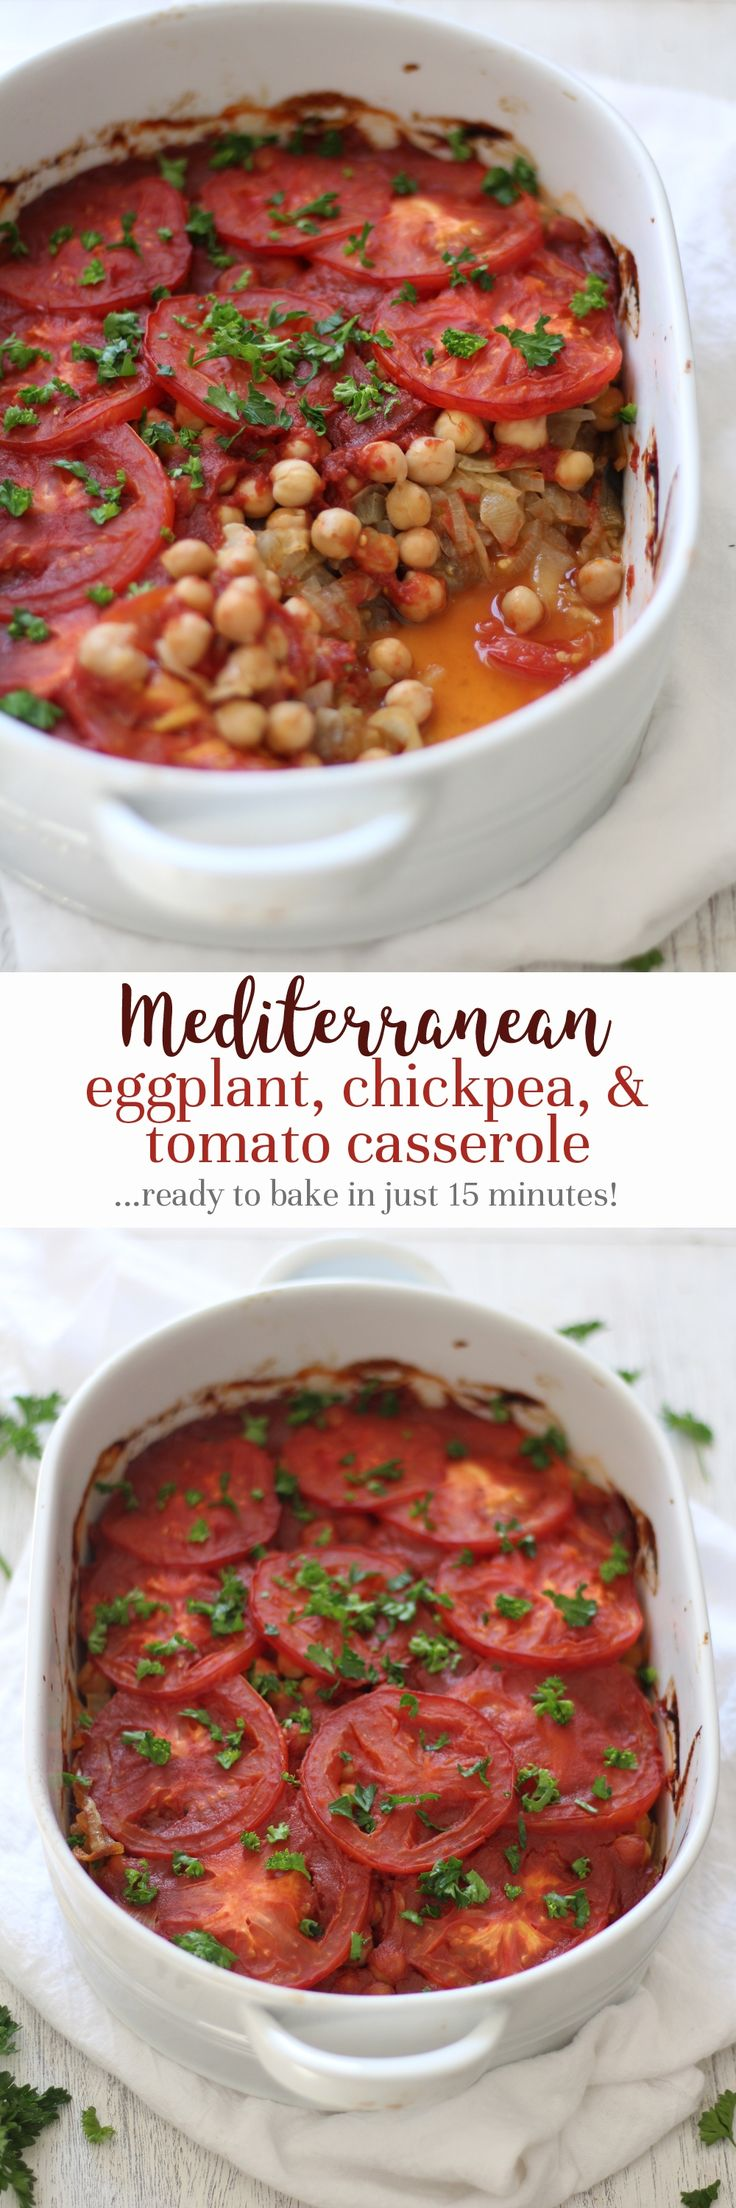 A comforting and healthy Mediterranean casserole with layers of eggplant, caramelized onions, chickpeas, and tomatoes - and simple to prepare!